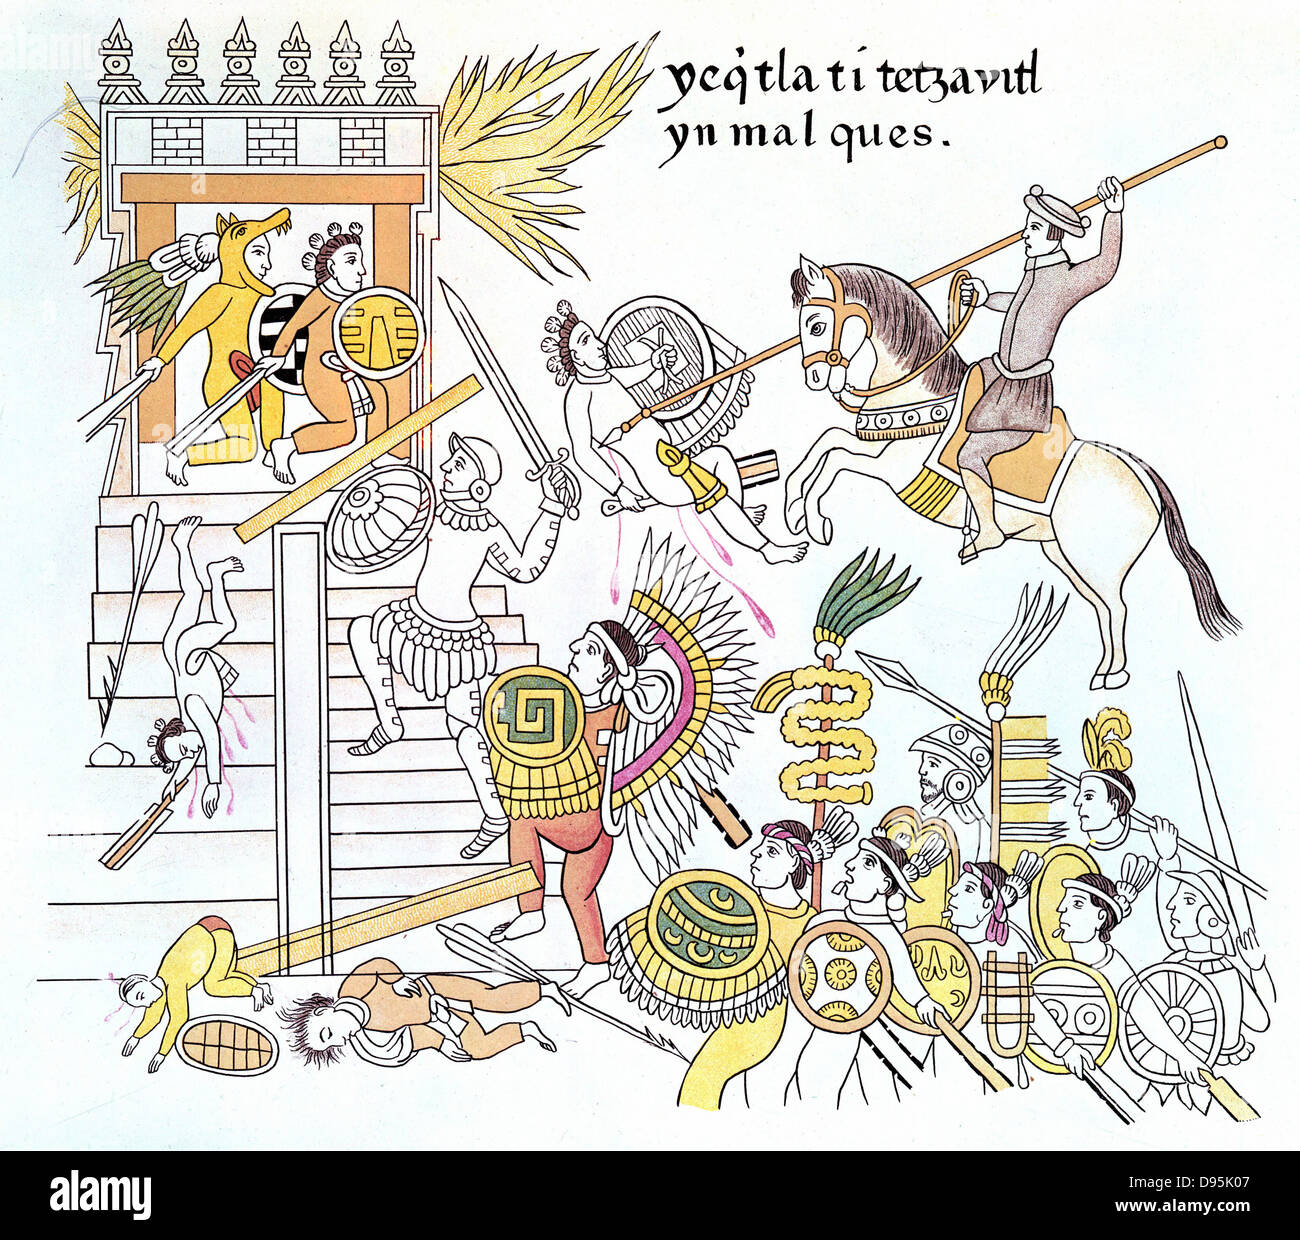 Spanish conquistadors with their native Tlazcalan allies attack an Aztec temple. Copy of section of drawings of - Stock Image